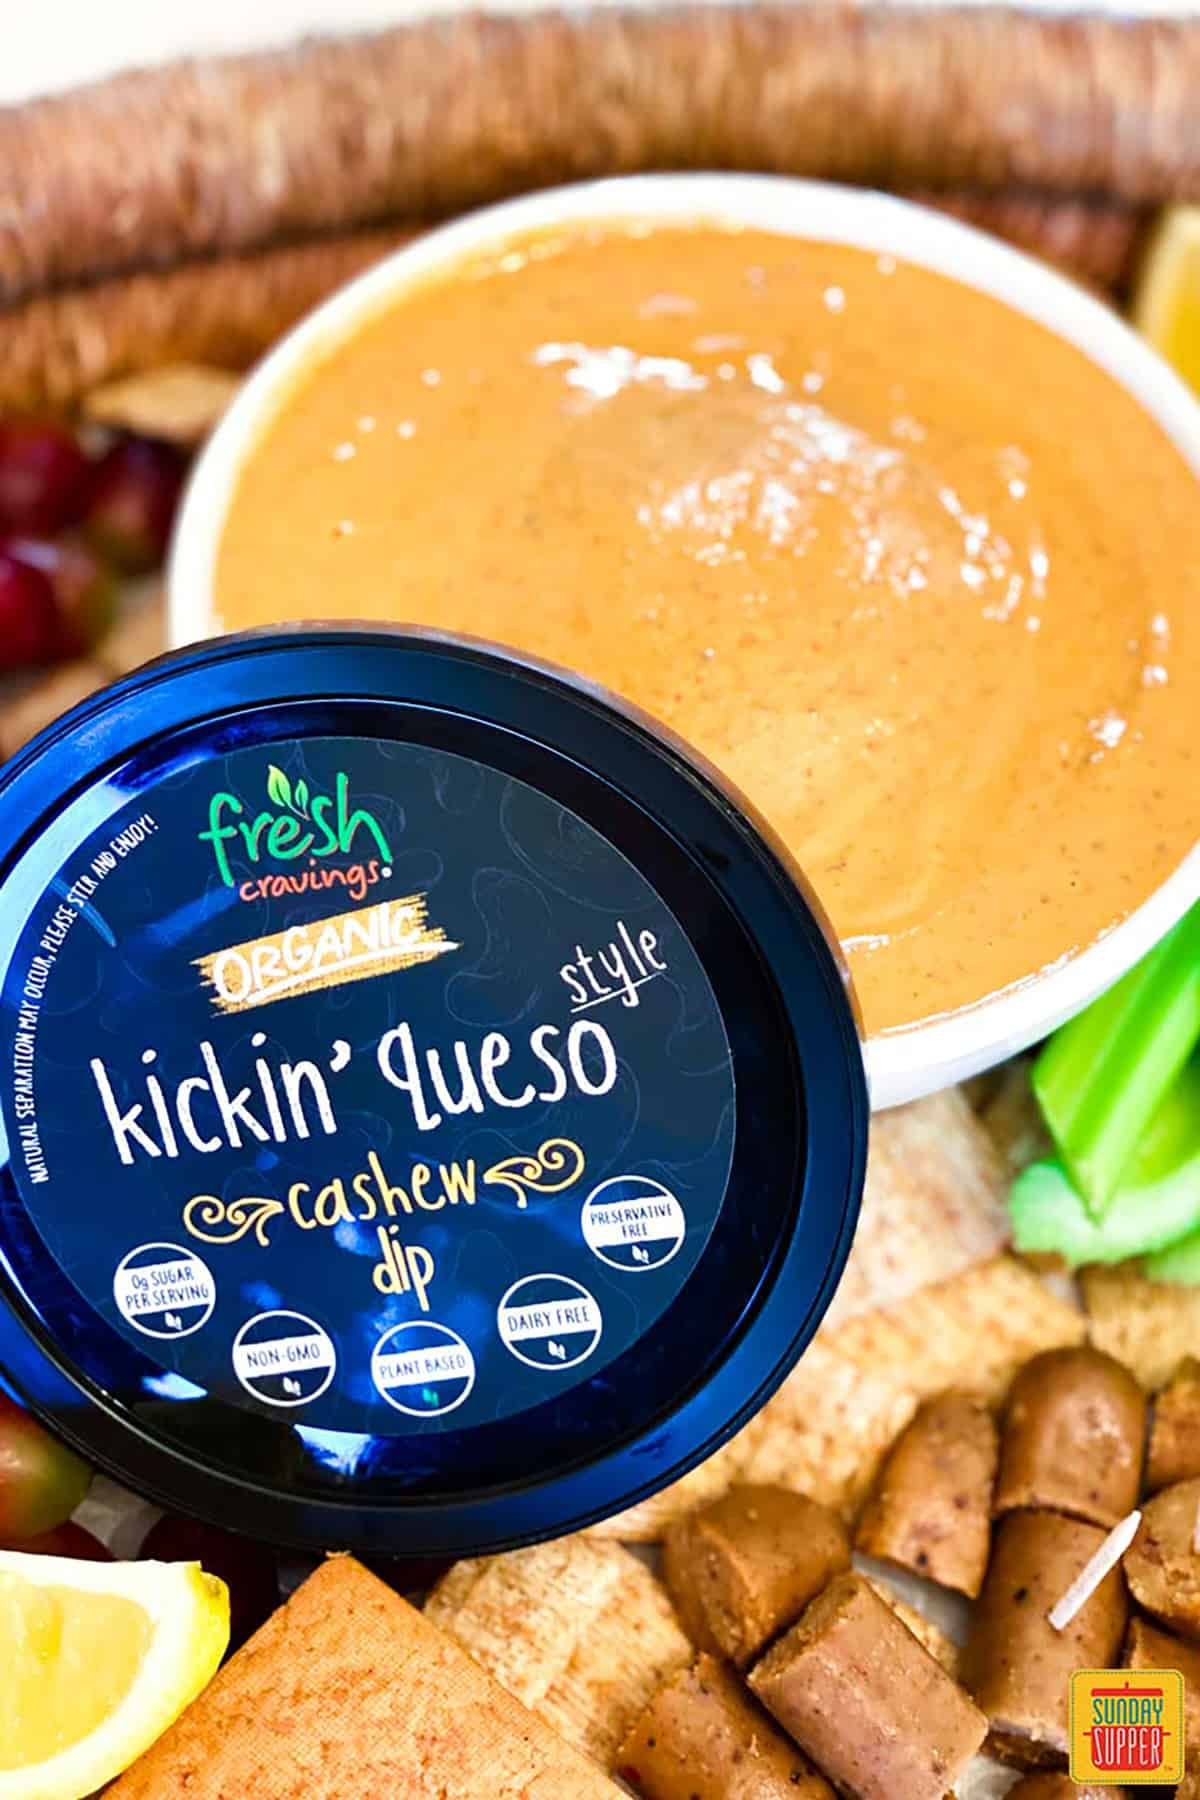 Kickin' queso dip from Fresh Cravings